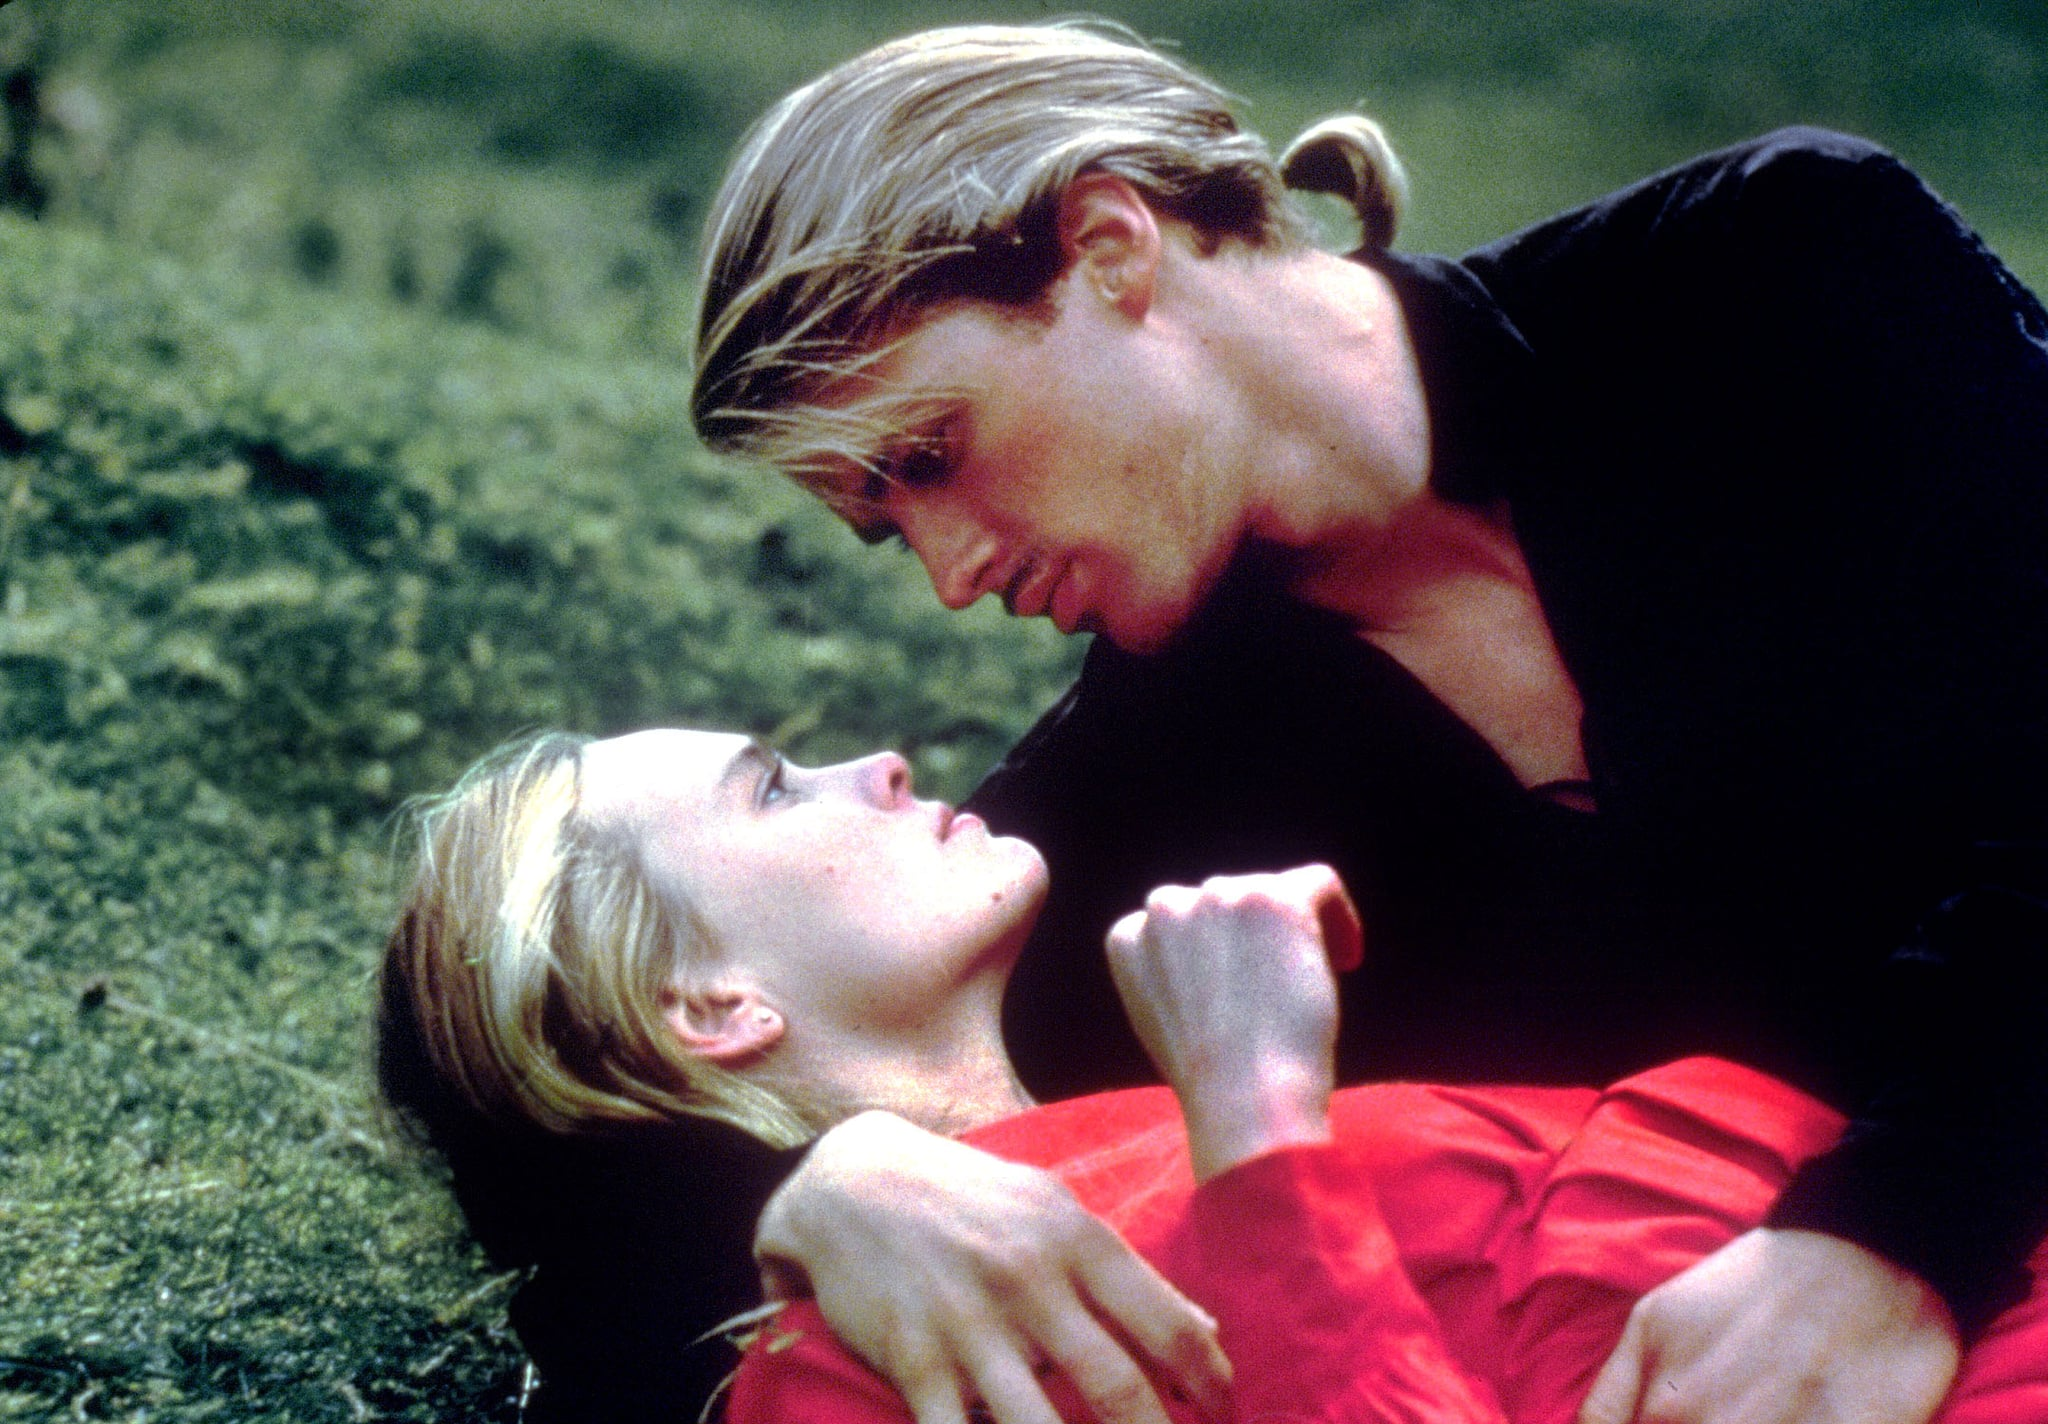 THE PRINCESS BRIDE, Robin Wright, Cary Elwes, 1987, TM & Copyright (c) 20th Century Fox Film Corp. All rights reserved.